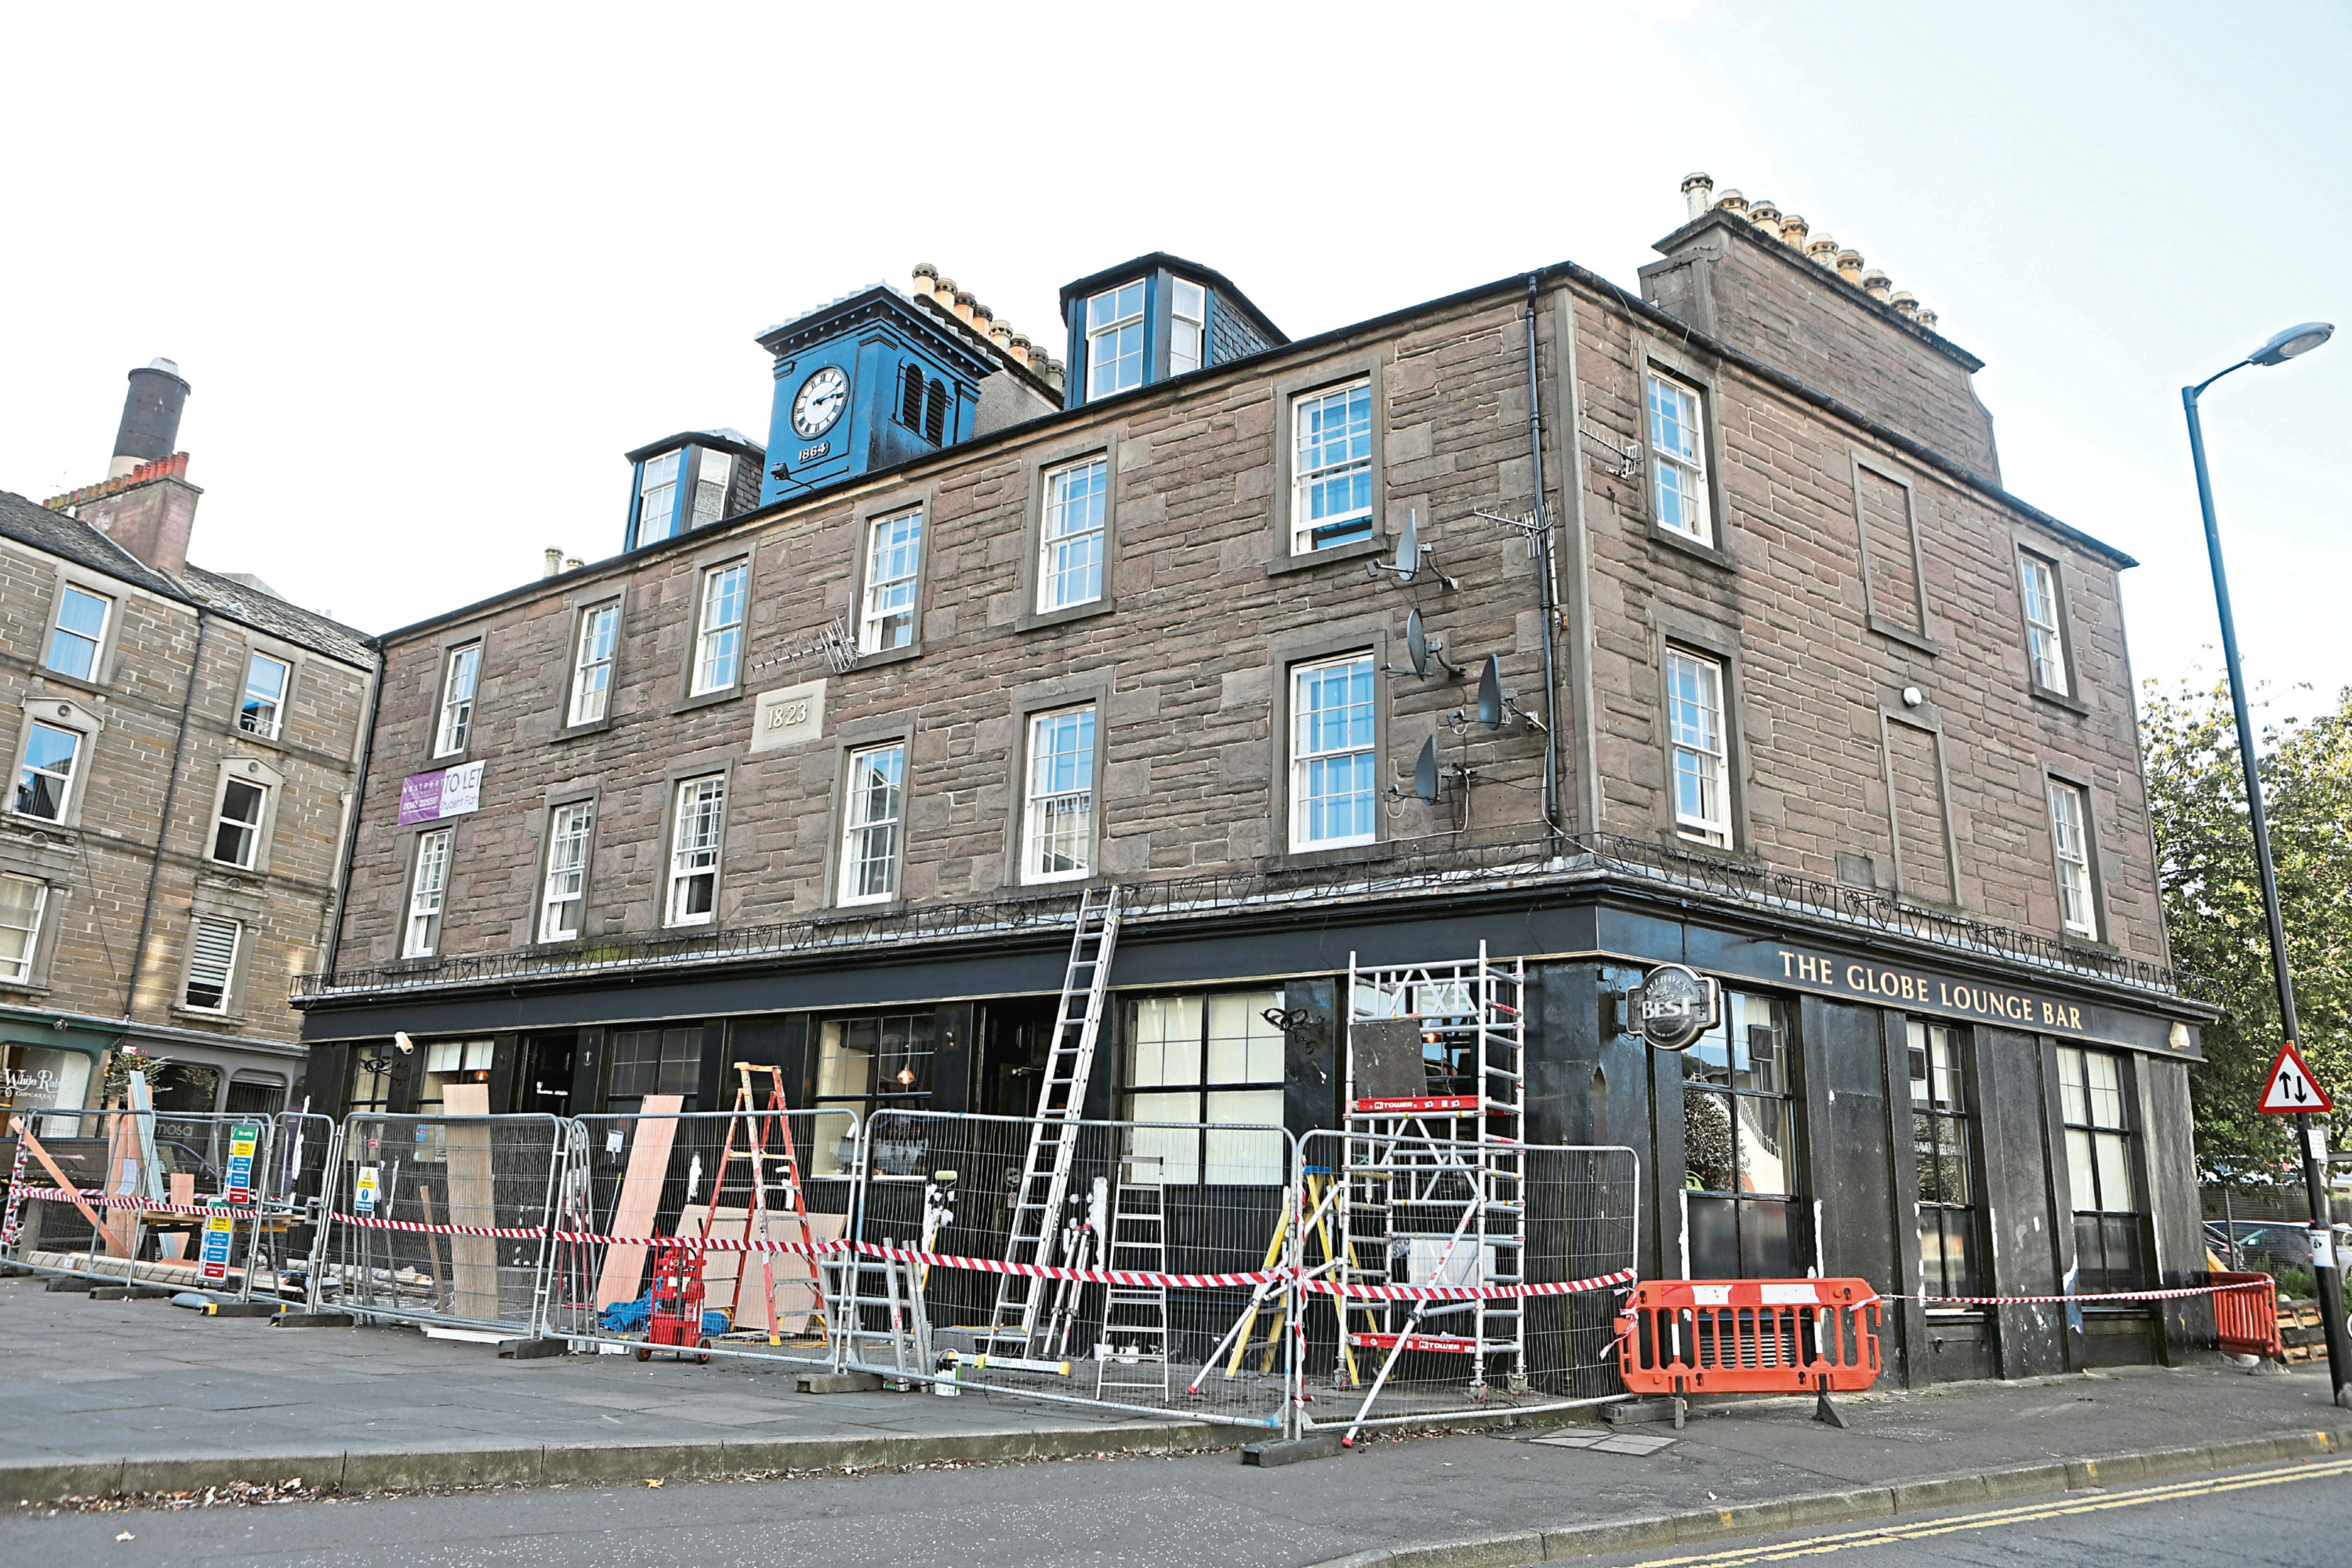 The Globe Bar Dundee being refurbished.